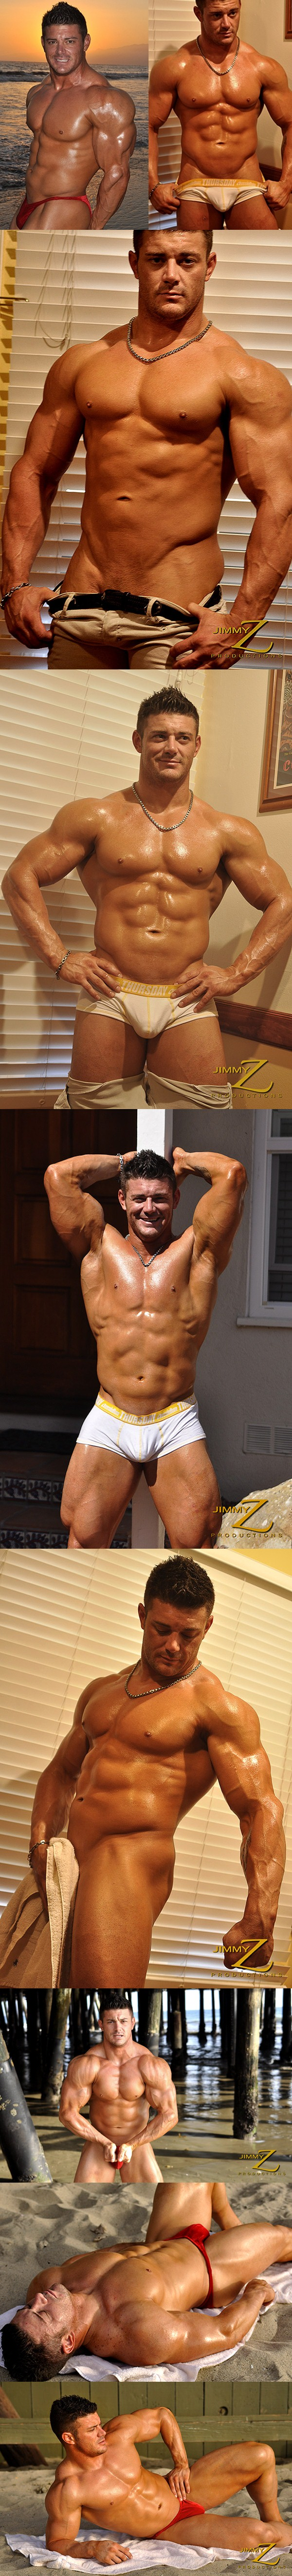 handsome muscle guy Austin Lewis flexing and posing in Photoshoot at Sunset at Jimmyzproductions 01